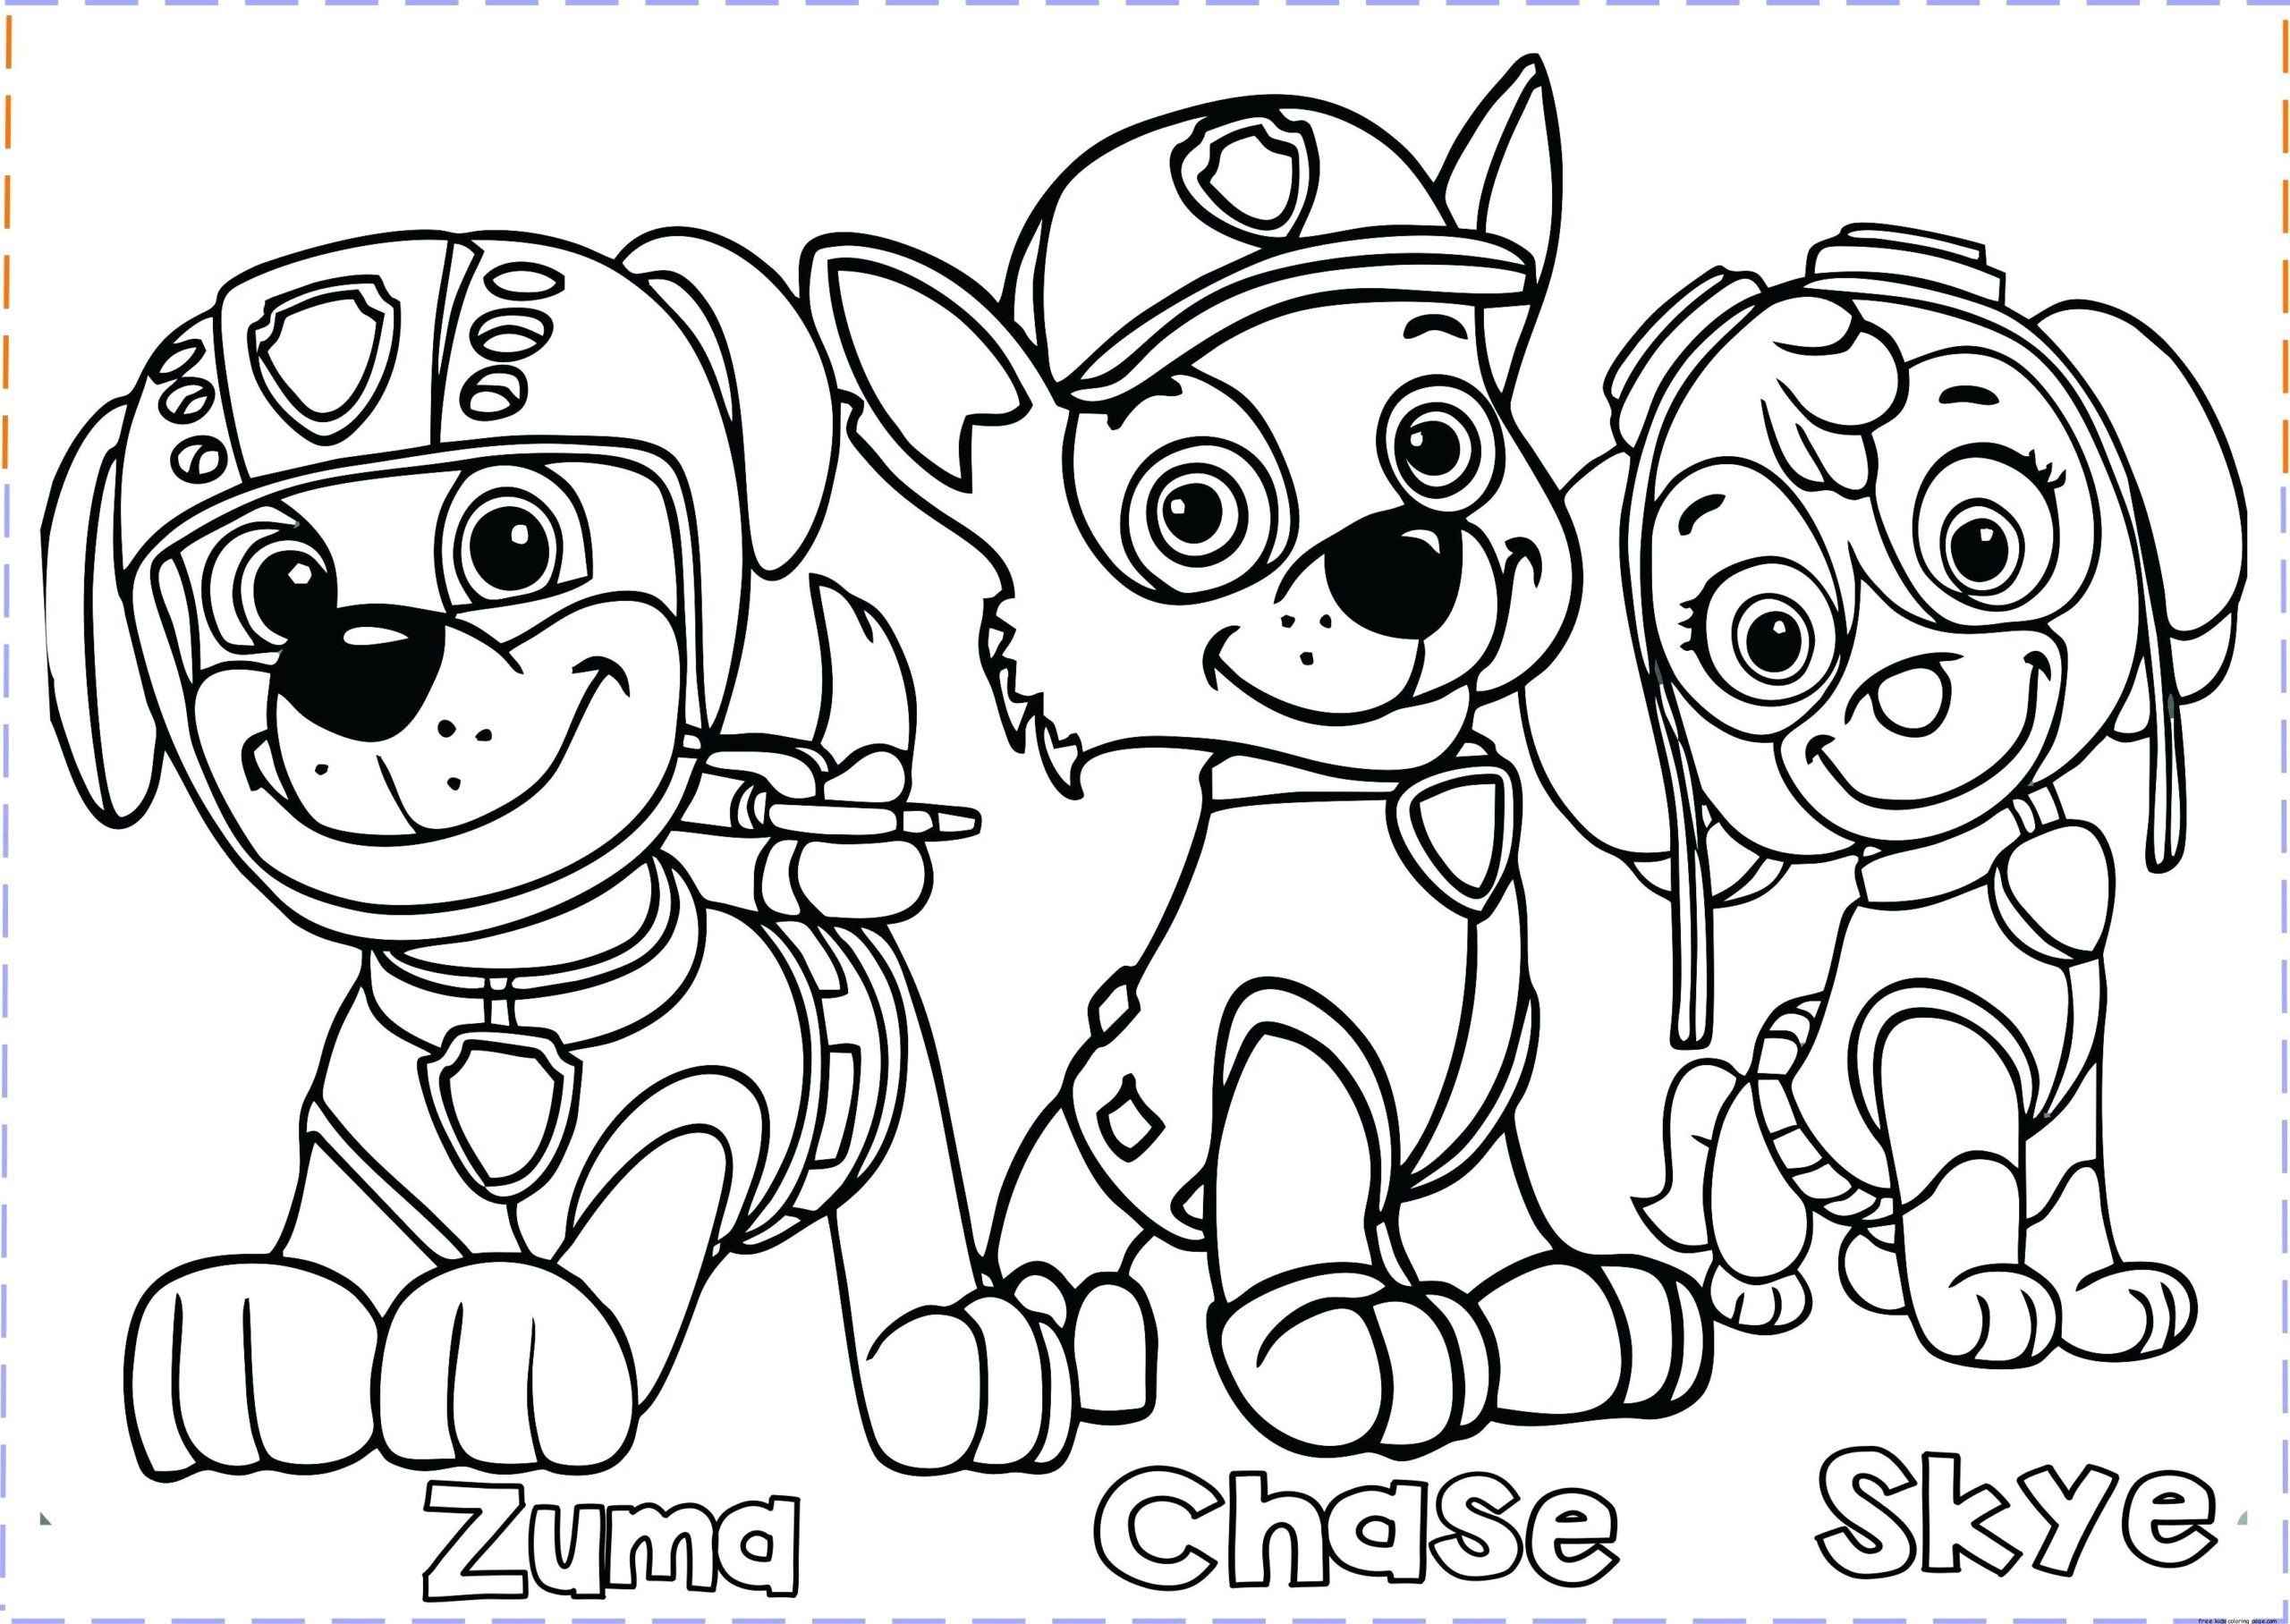 Kids Free Printable Coloring Pages Kids Printable Coloring Sheets Coloring Pages For Kids In 2020 Paw Patrol Coloring Paw Patrol Coloring Pages Cartoon Coloring Pages